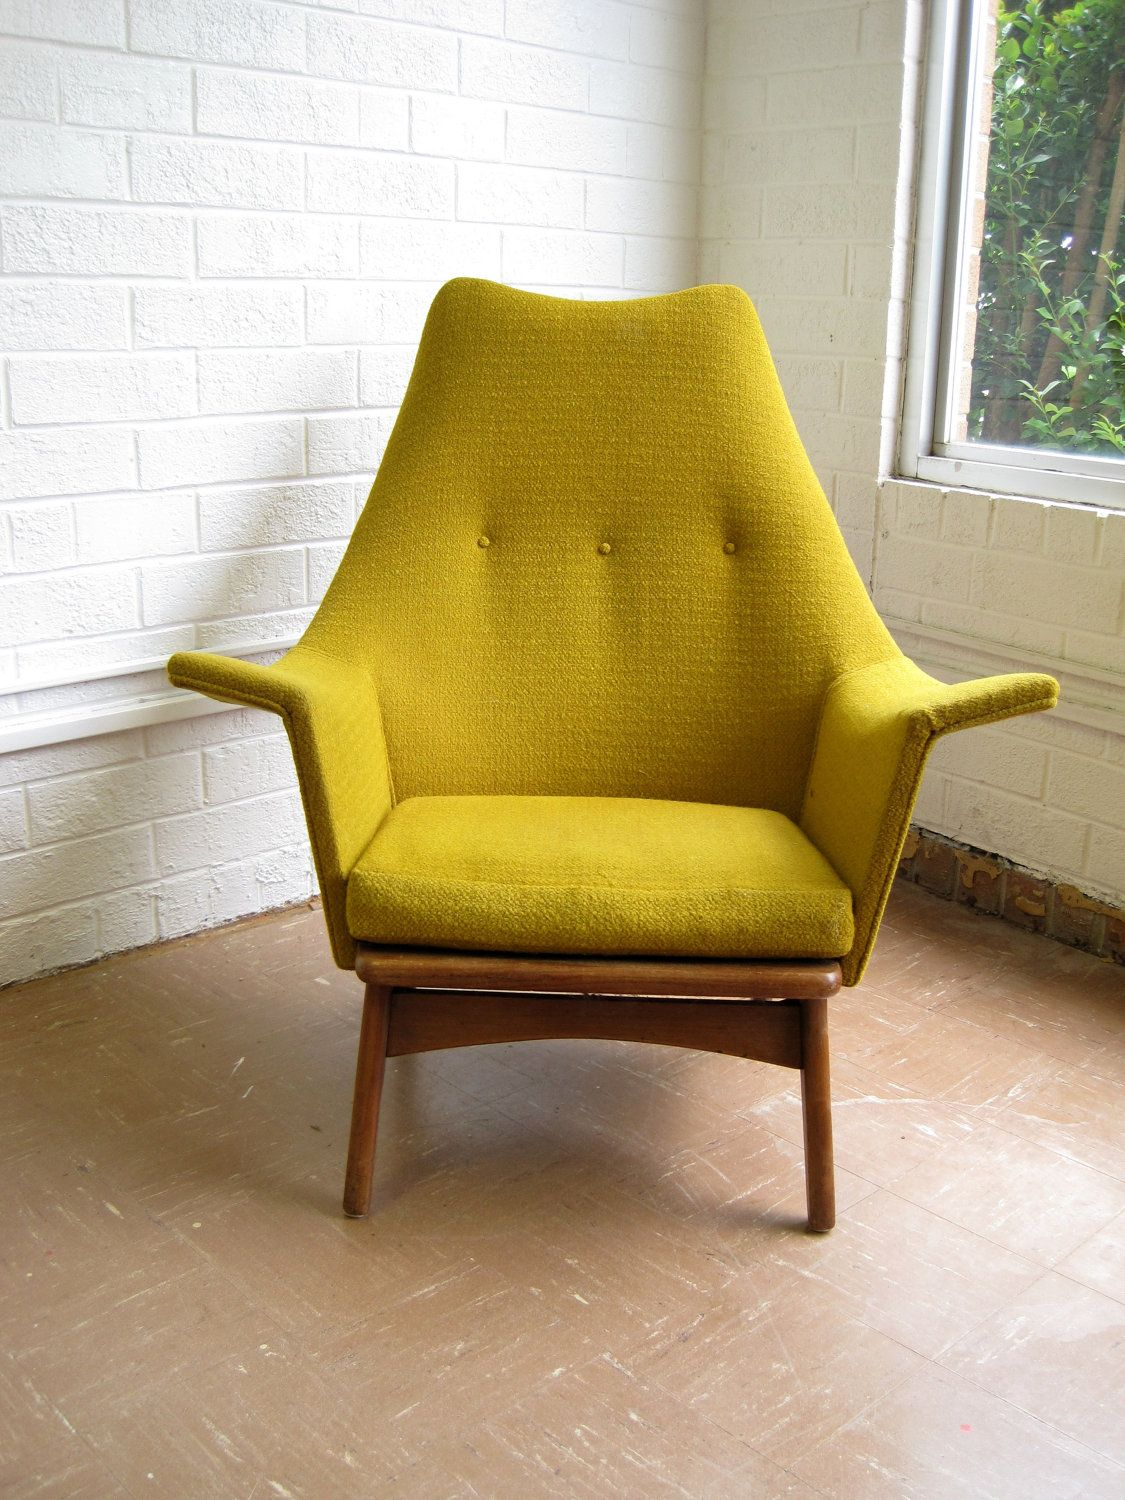 Mid Century Yellow Envy.   Mid Century Modern Lounge Chair In Mustard Yellow